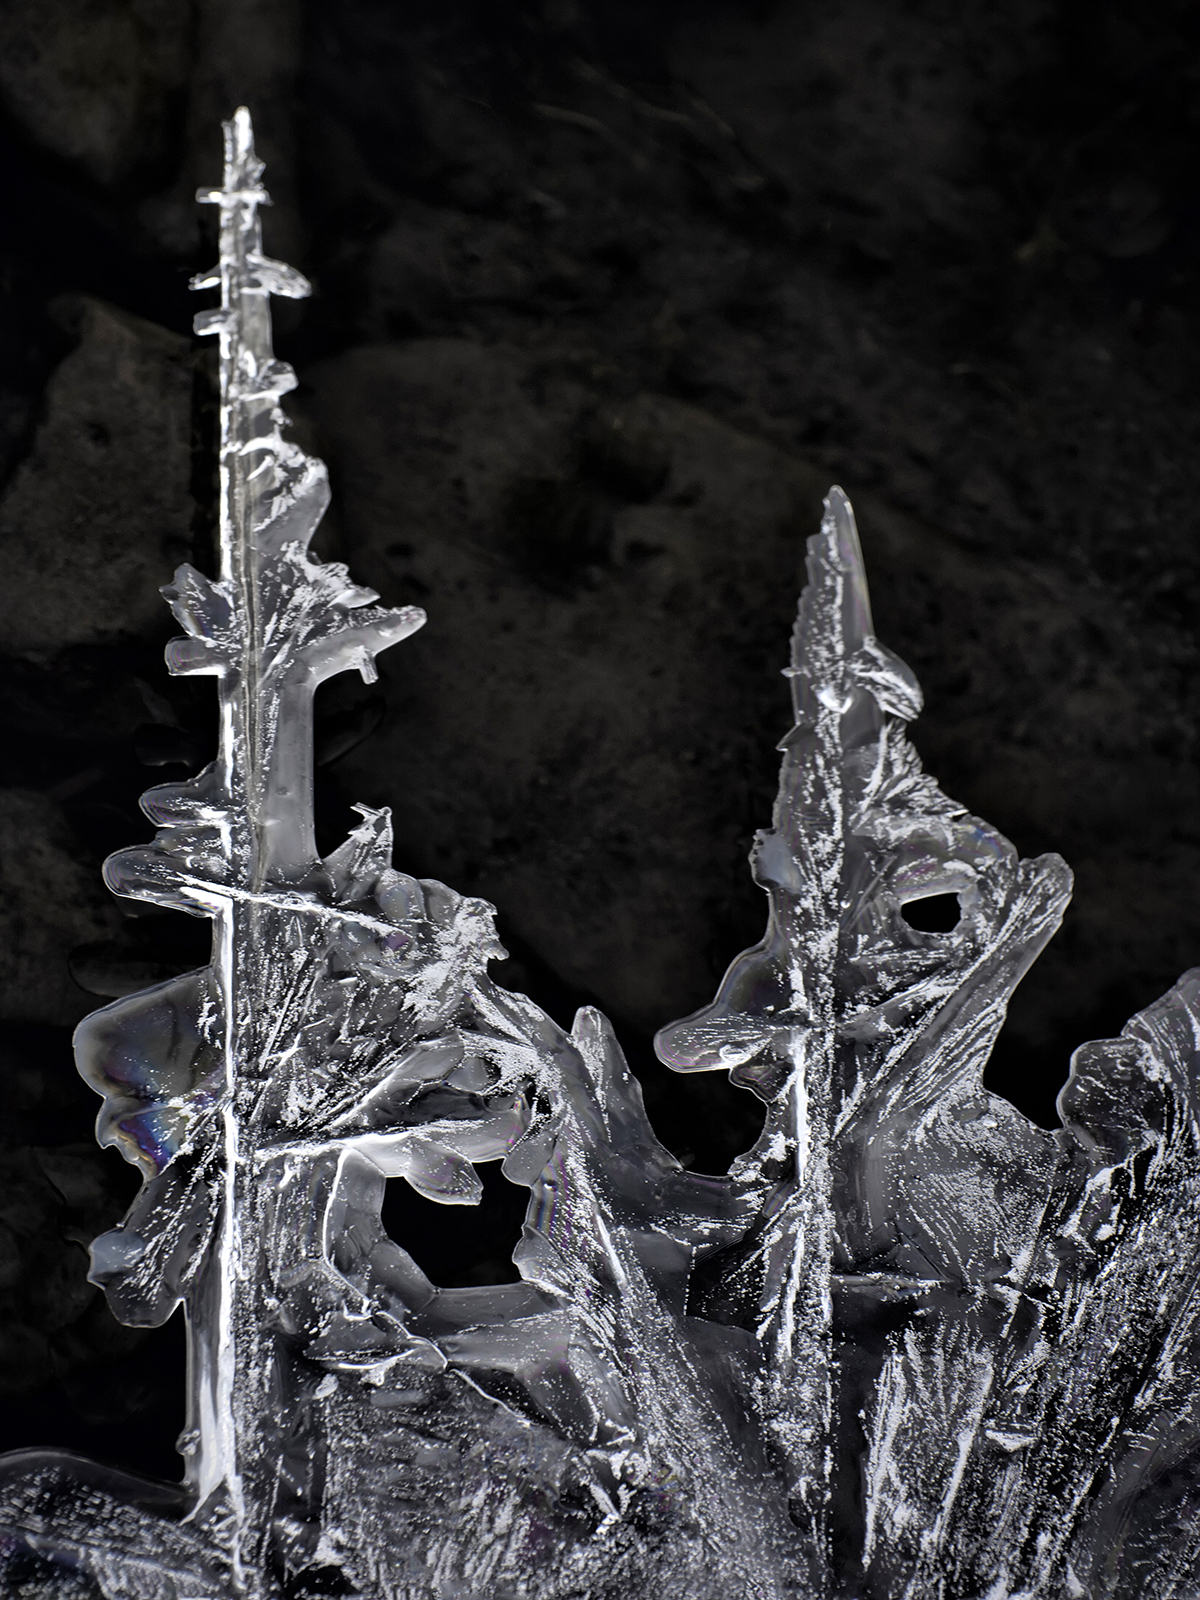 Ice formations are unique to that moment and place, and will not be the same even an hour later.